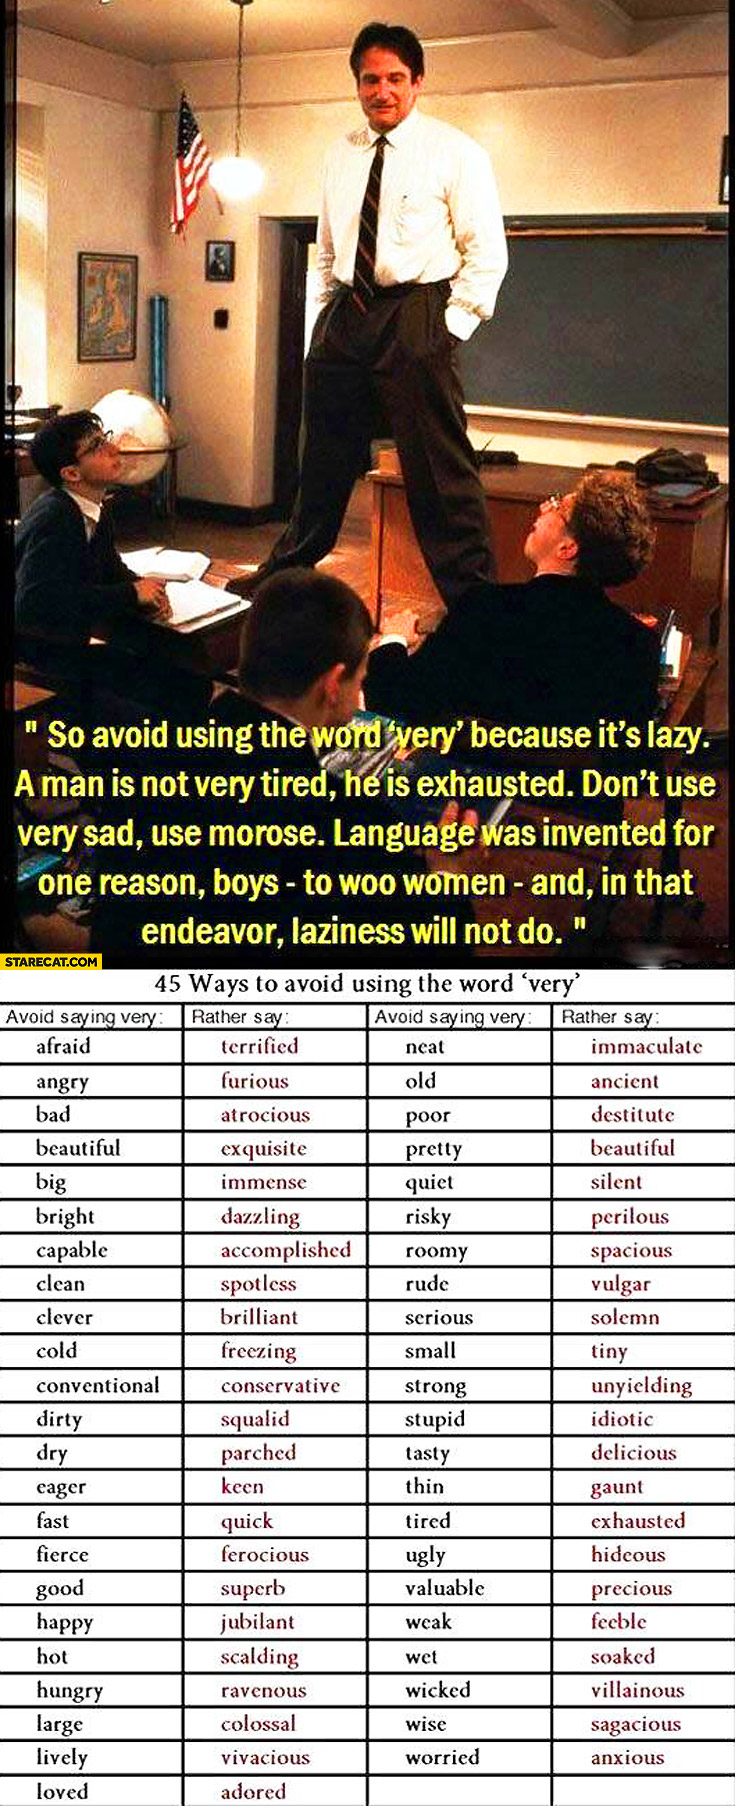 45 Ways To Avoid Using The Word Very Dead Poets Society